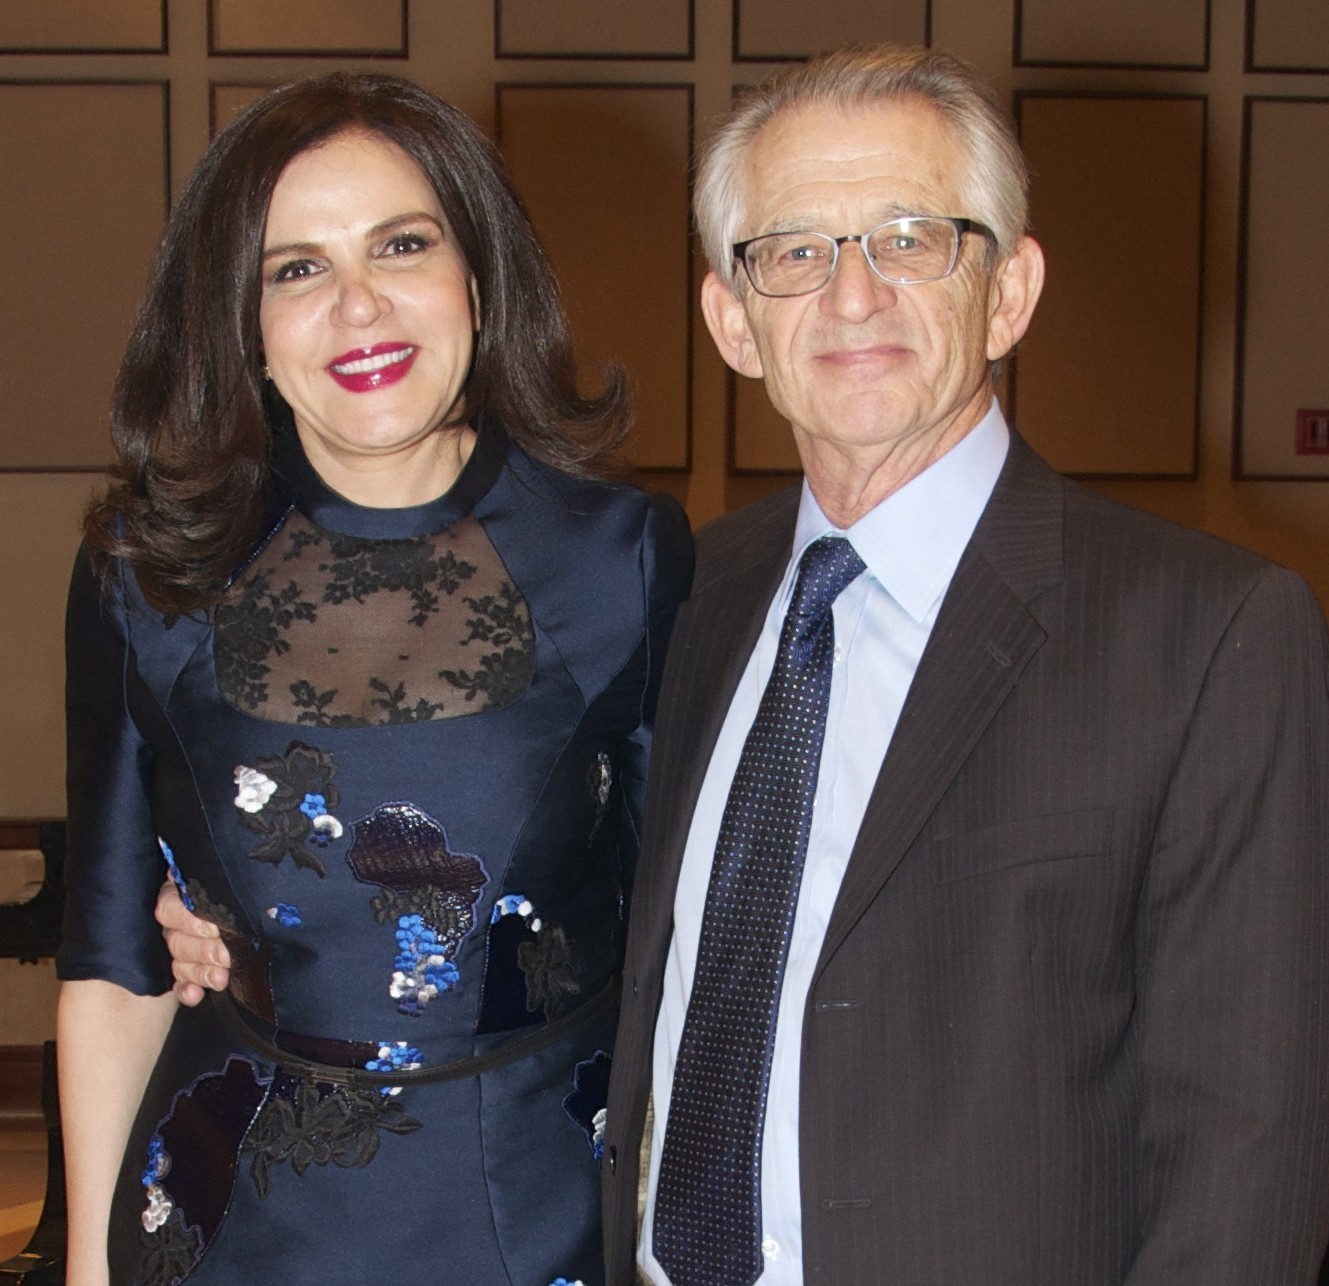 Smiling woman with long dark hair next to smile man with gray hair and glasses